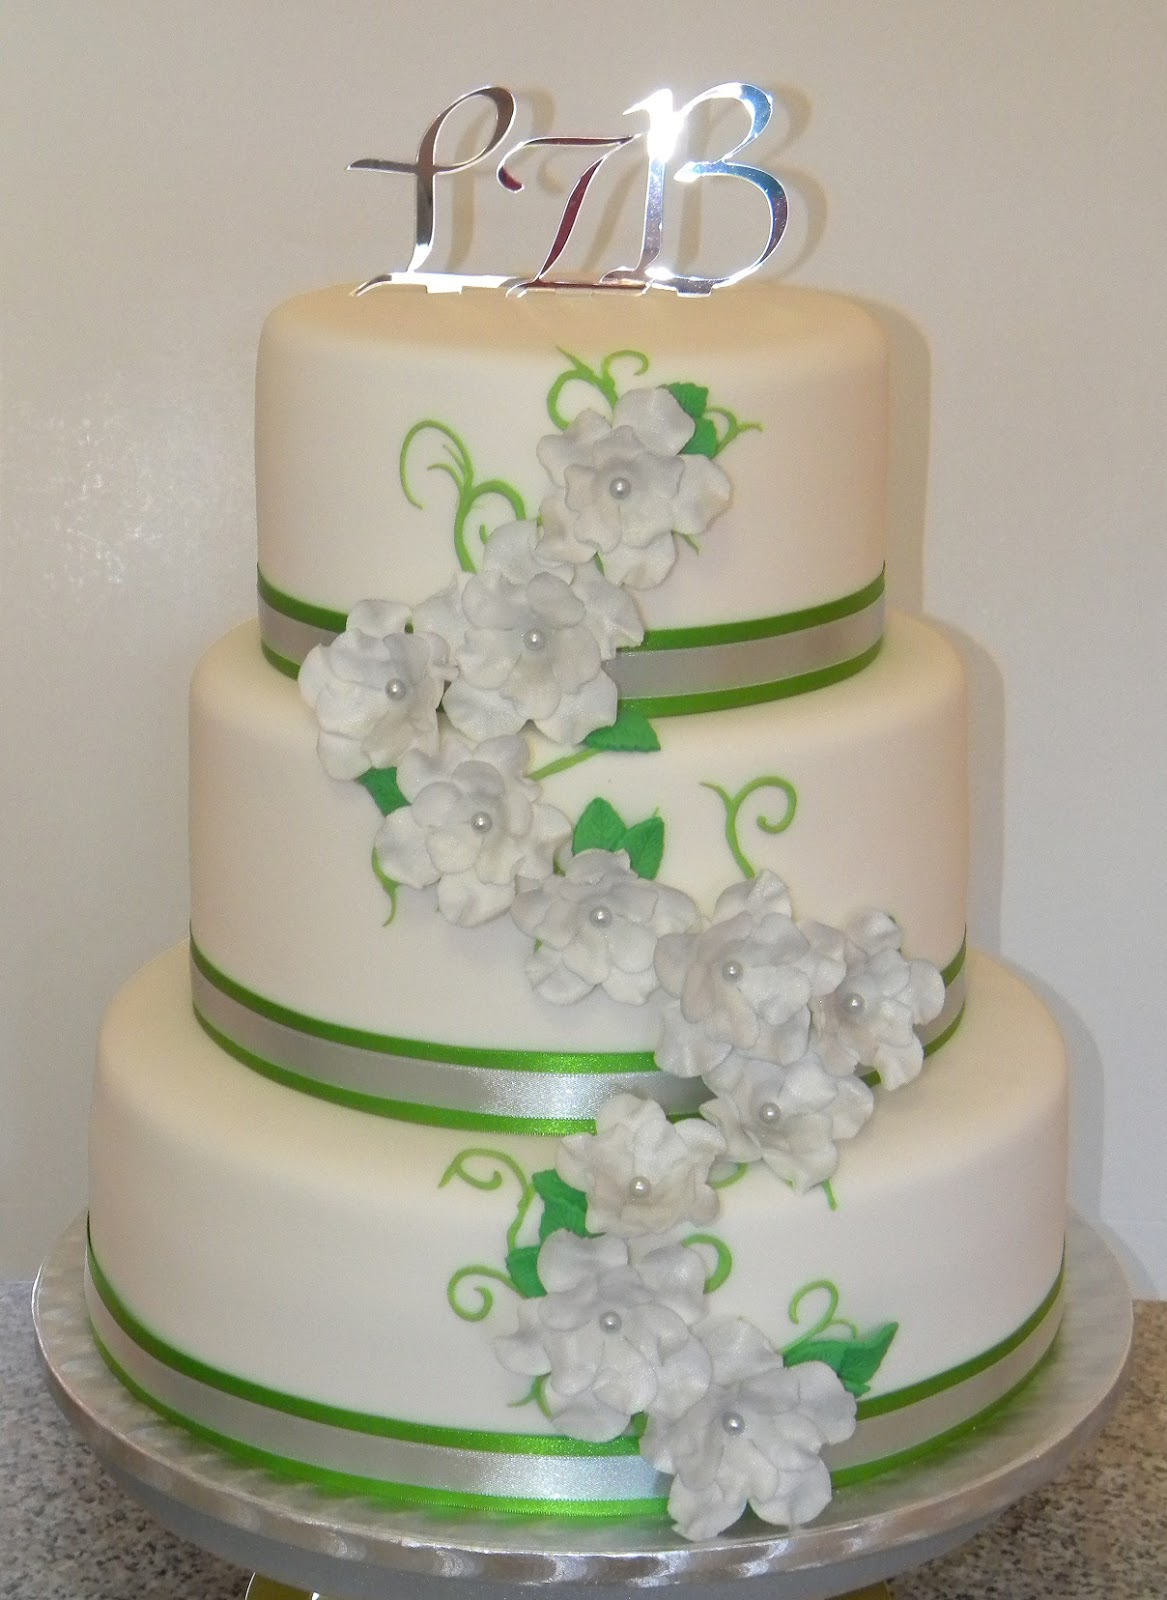 BITE ME CUPCAKES And WRAPPERS LIGHT GREEN SILVER 3 TIER WEDDING CAKE